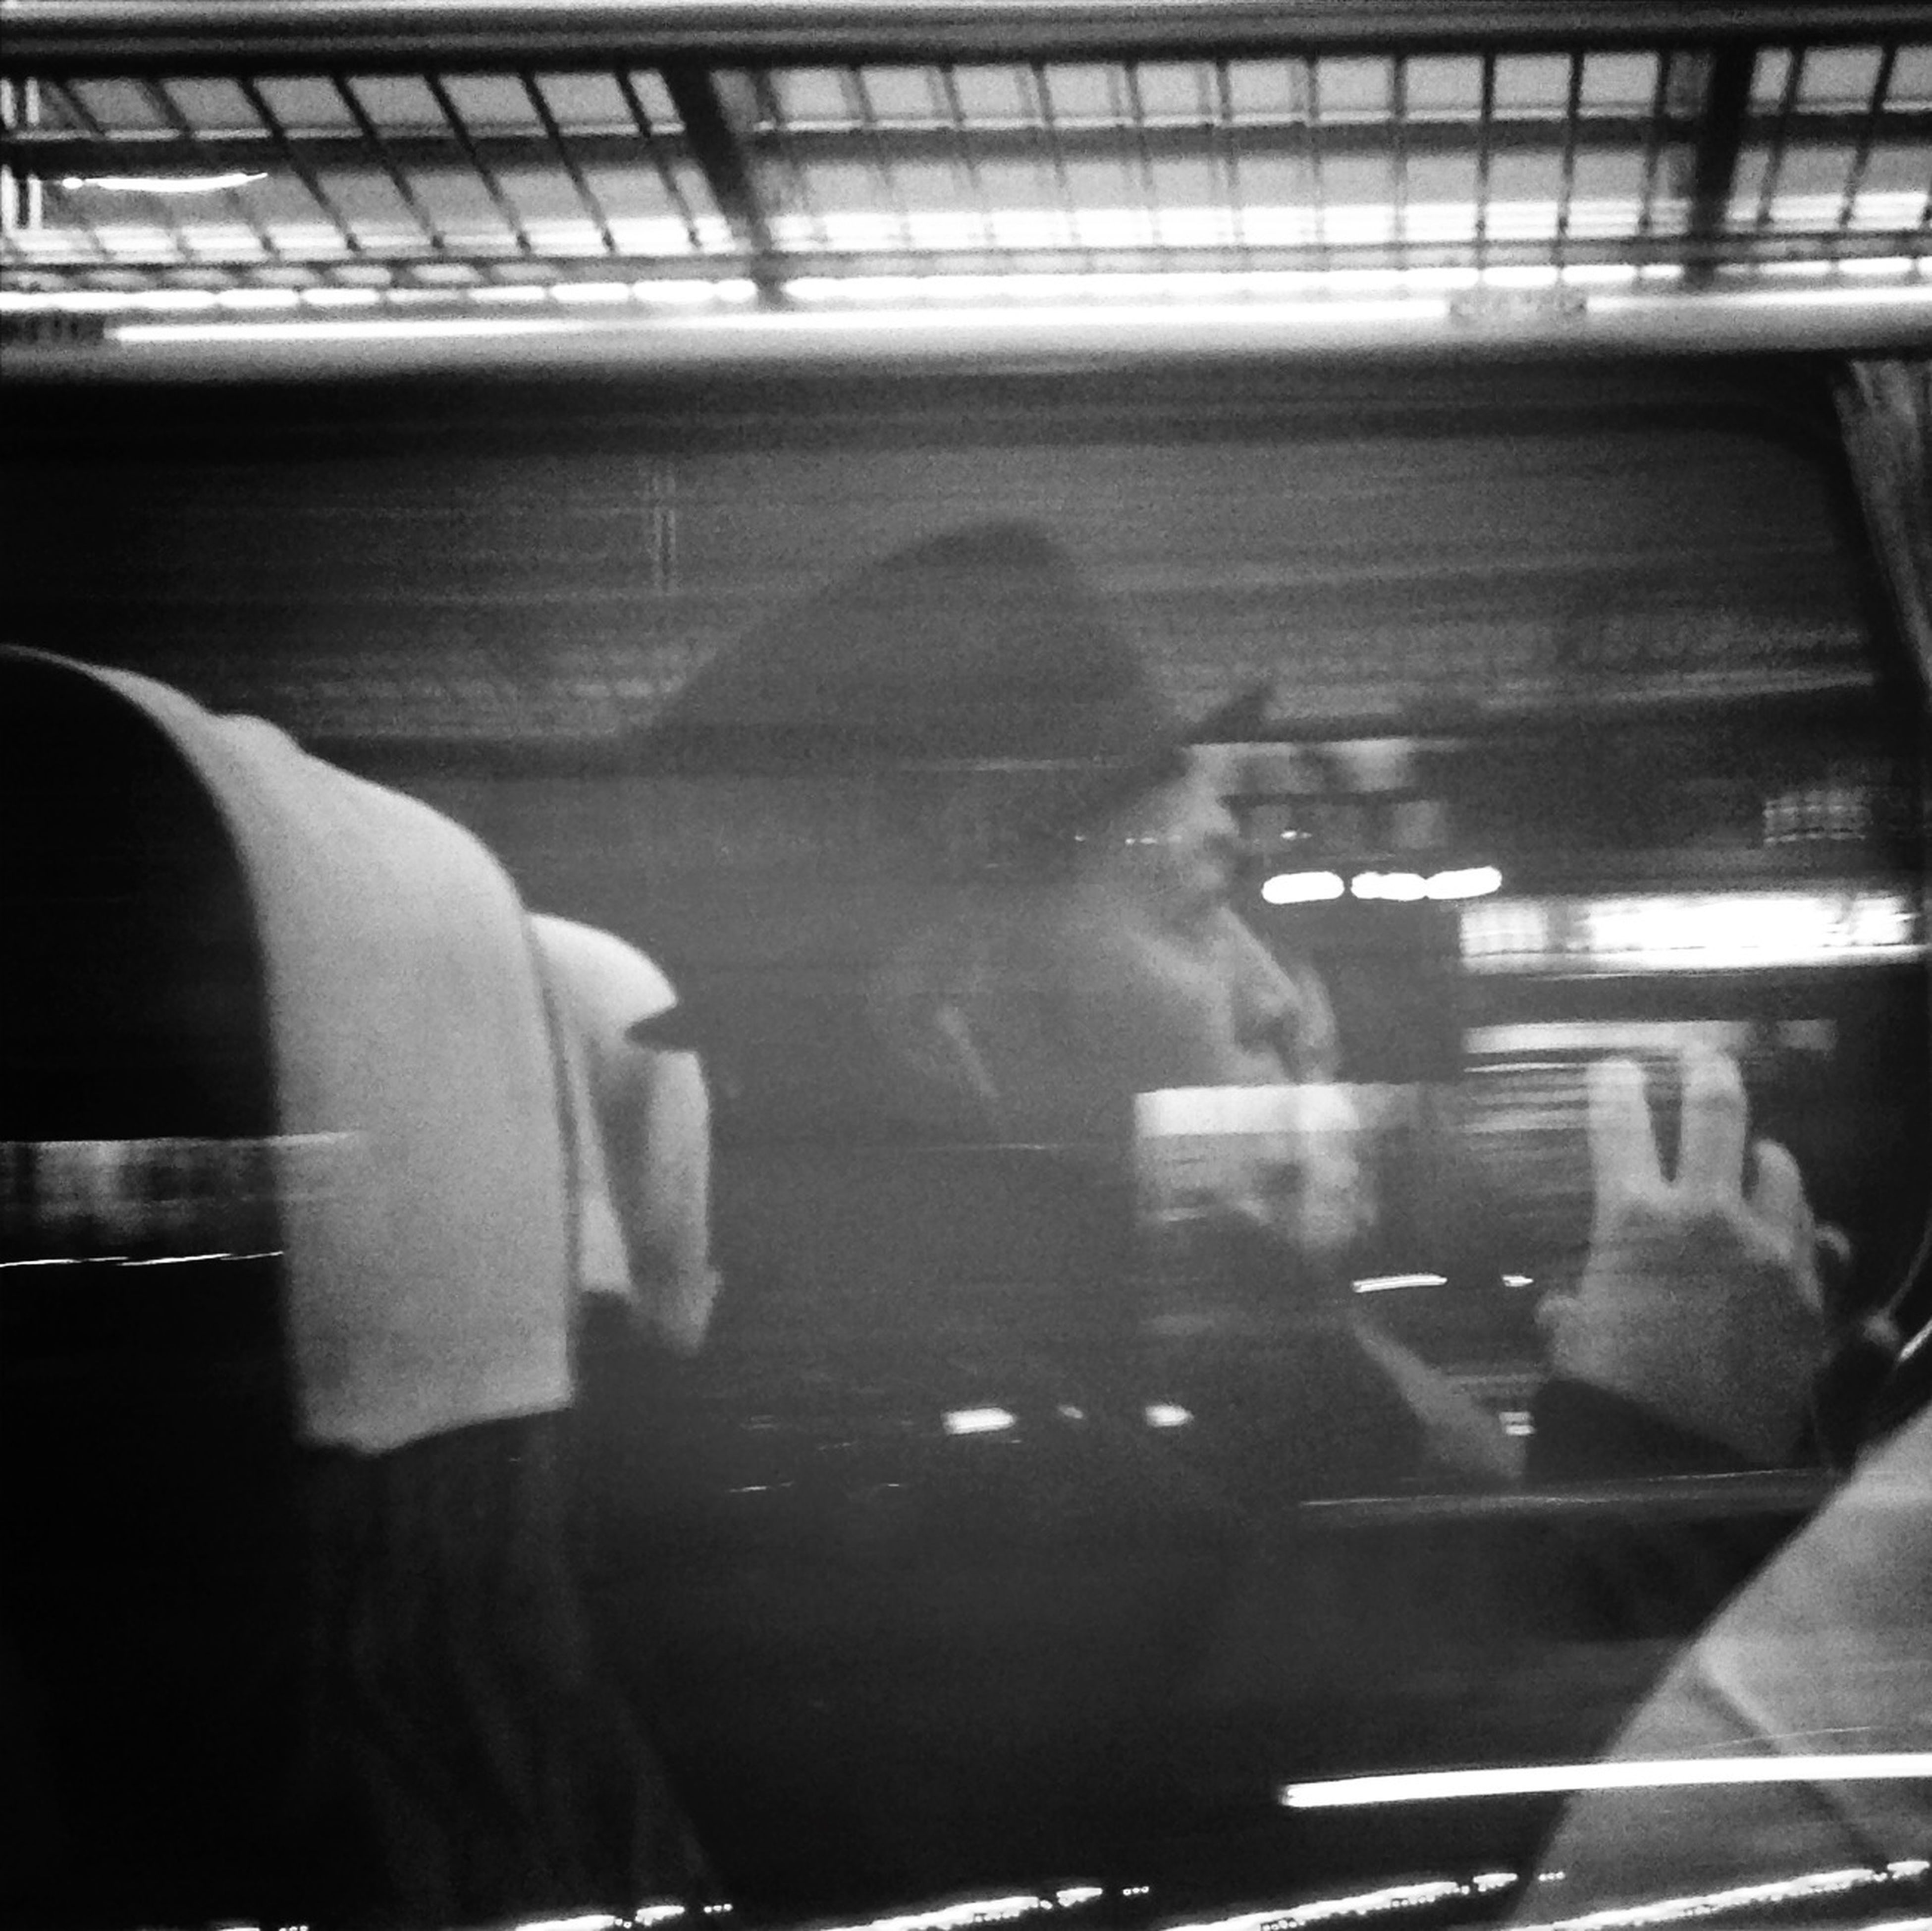 indoors, lifestyles, men, person, leisure activity, glass - material, transparent, public transportation, window, reflection, unrecognizable person, part of, high angle view, escalator, sitting